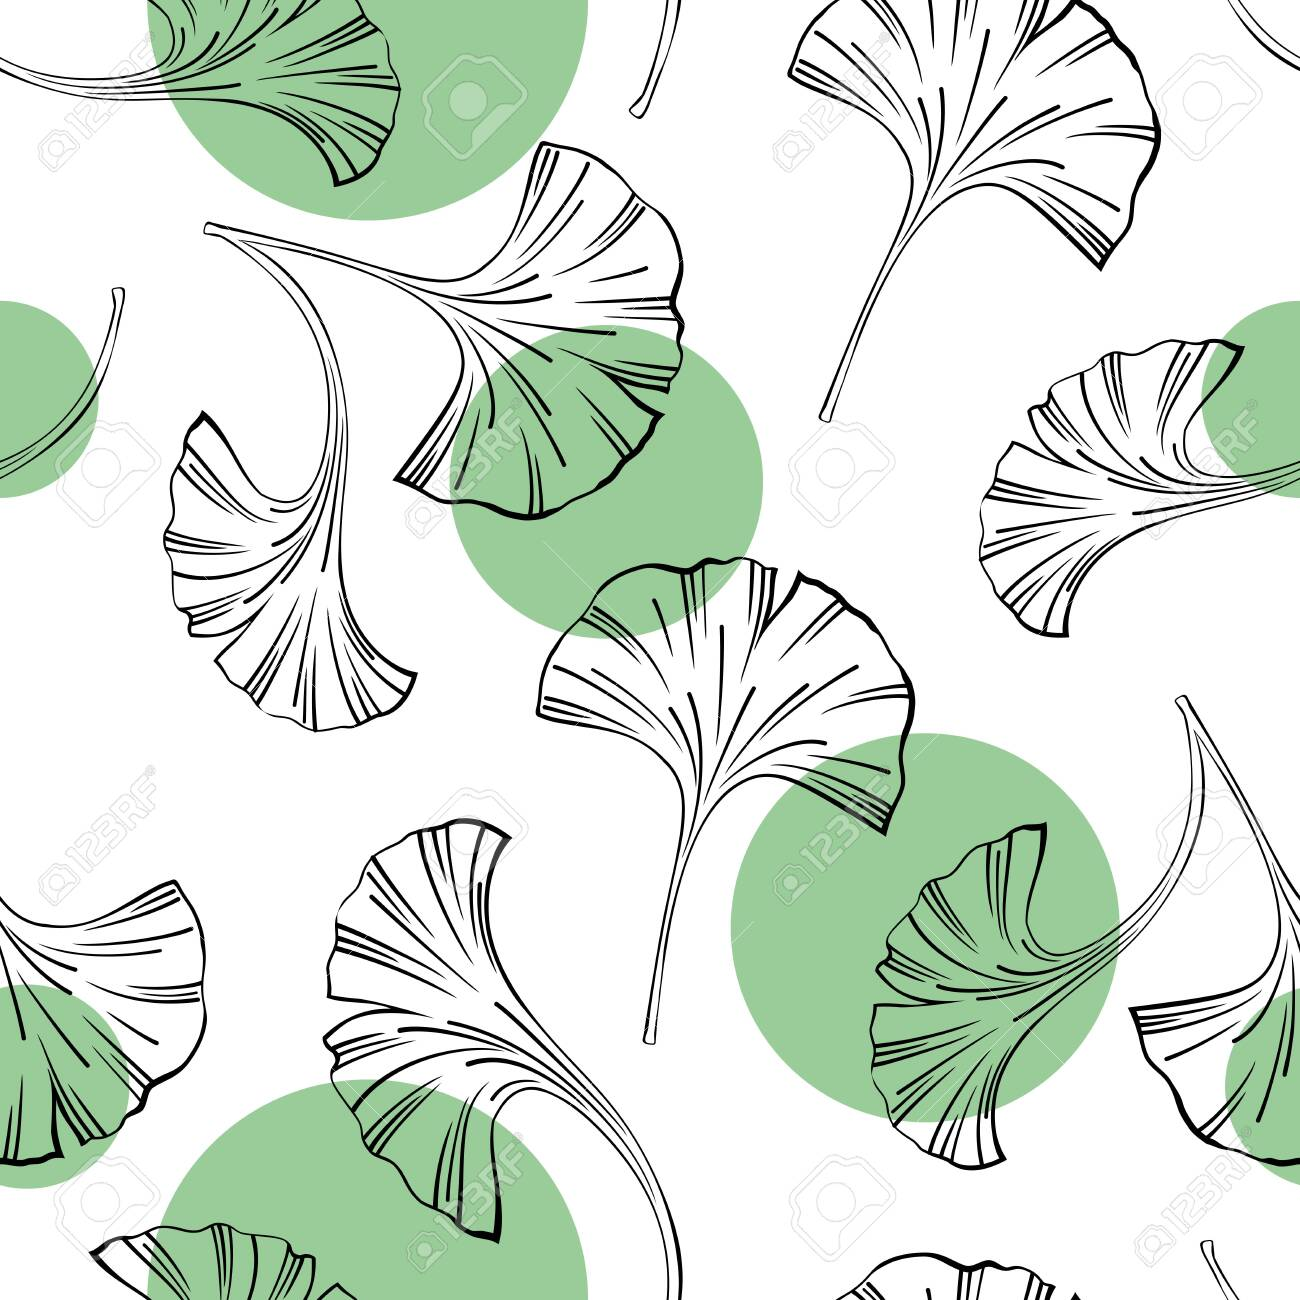 Vector seamless background with Ginkgo biloba leaves - 146127296